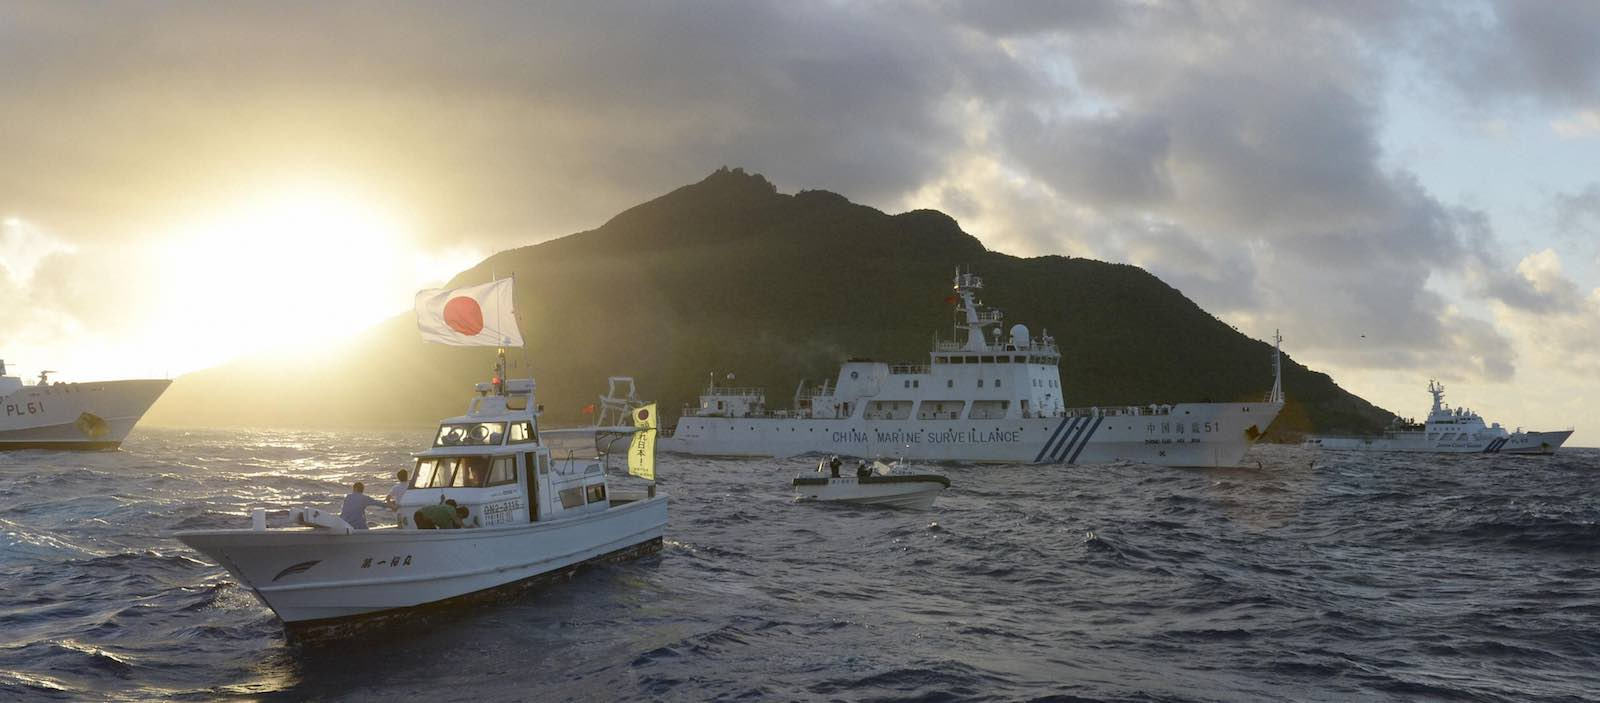 Chinese and Japanese vessels passing in 2013 near the disputed Senkaku/Diaoyu Islands in the East China Sea (Photo: Kyodo News Stills via Getty Images)